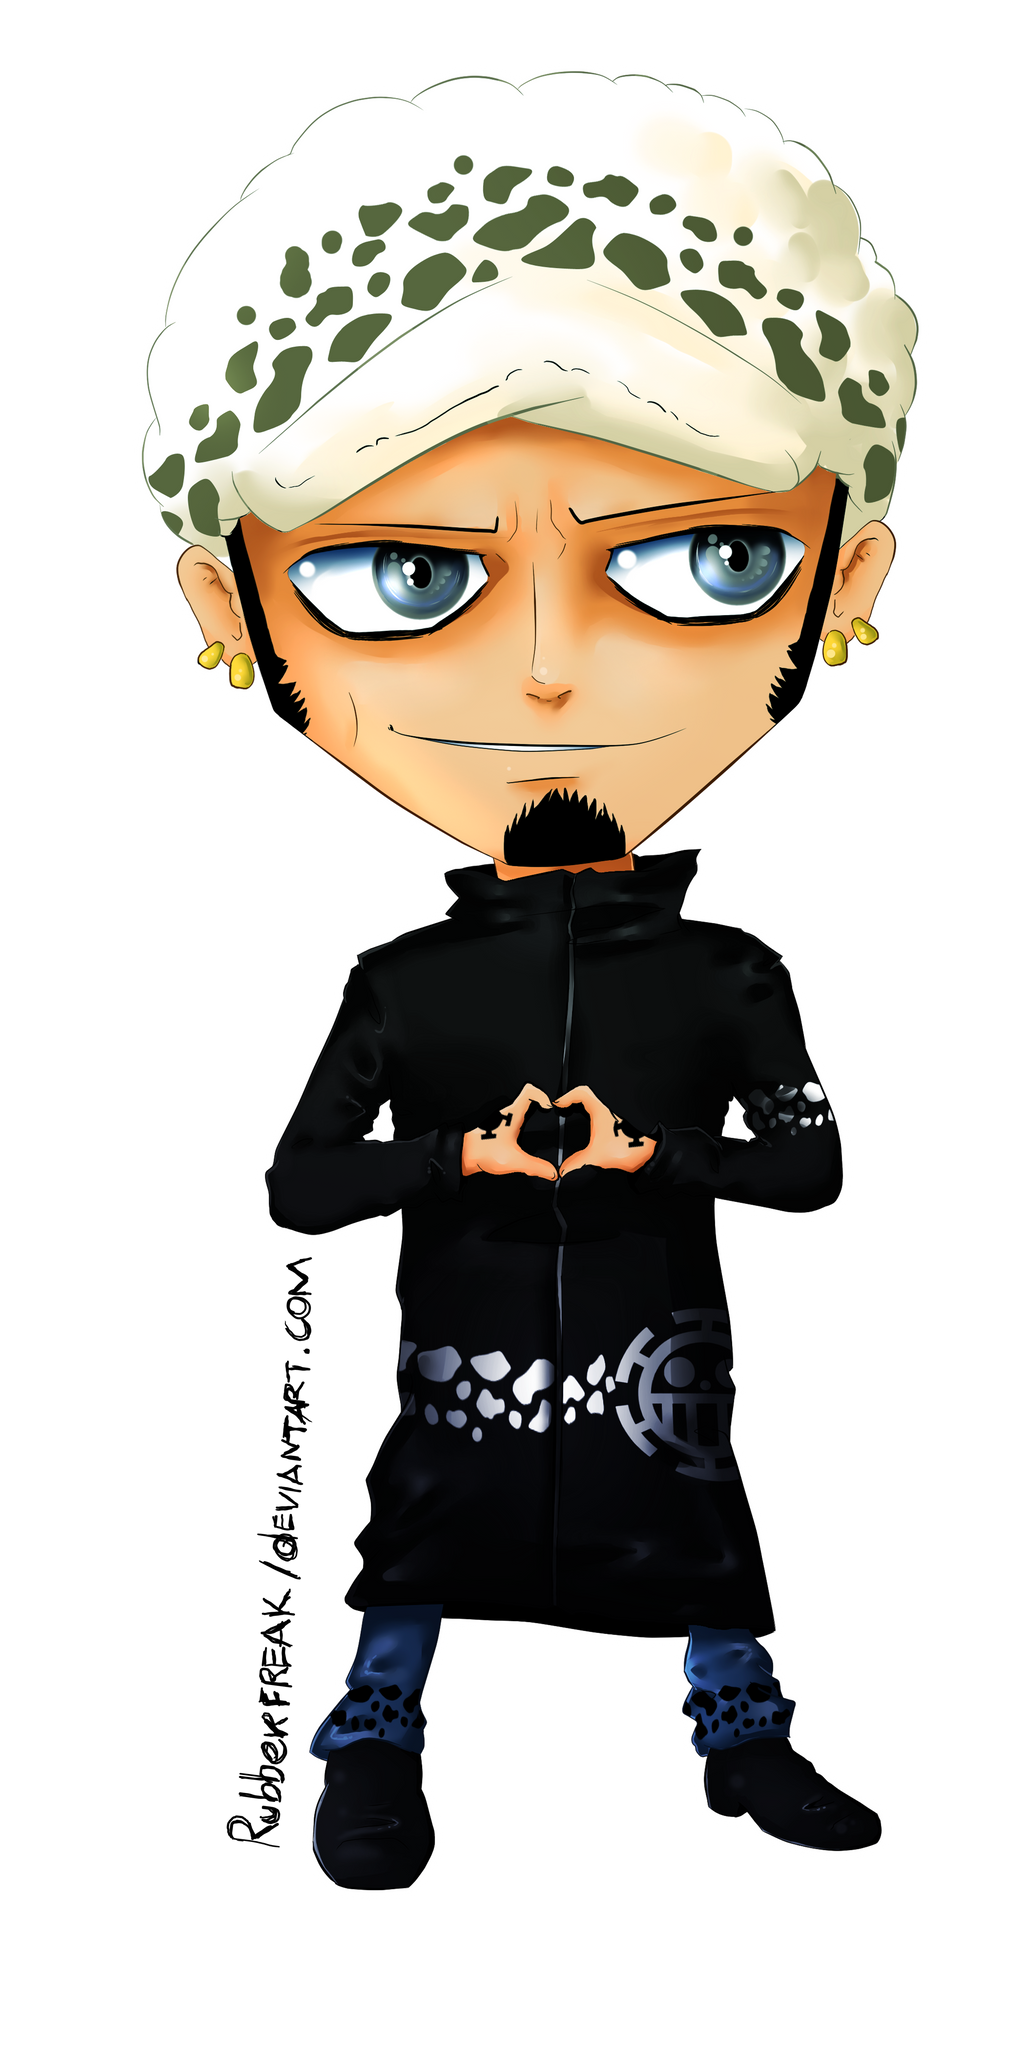 Trafalgar Law by Rubberfreak on DeviantArt